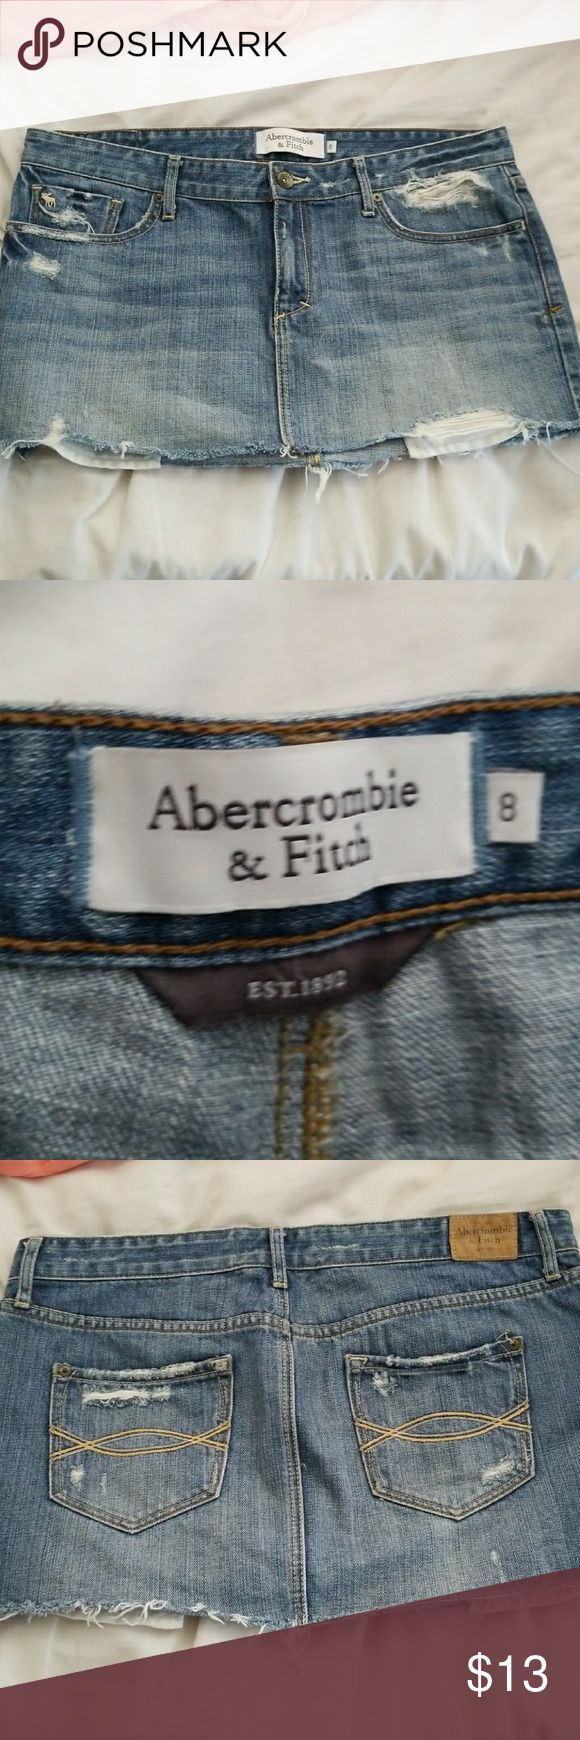 Abercrombie and Fitch  skirt Denim Abercrombie and Fitch  skirt in great condition Abercrombie & Fitch Skirts